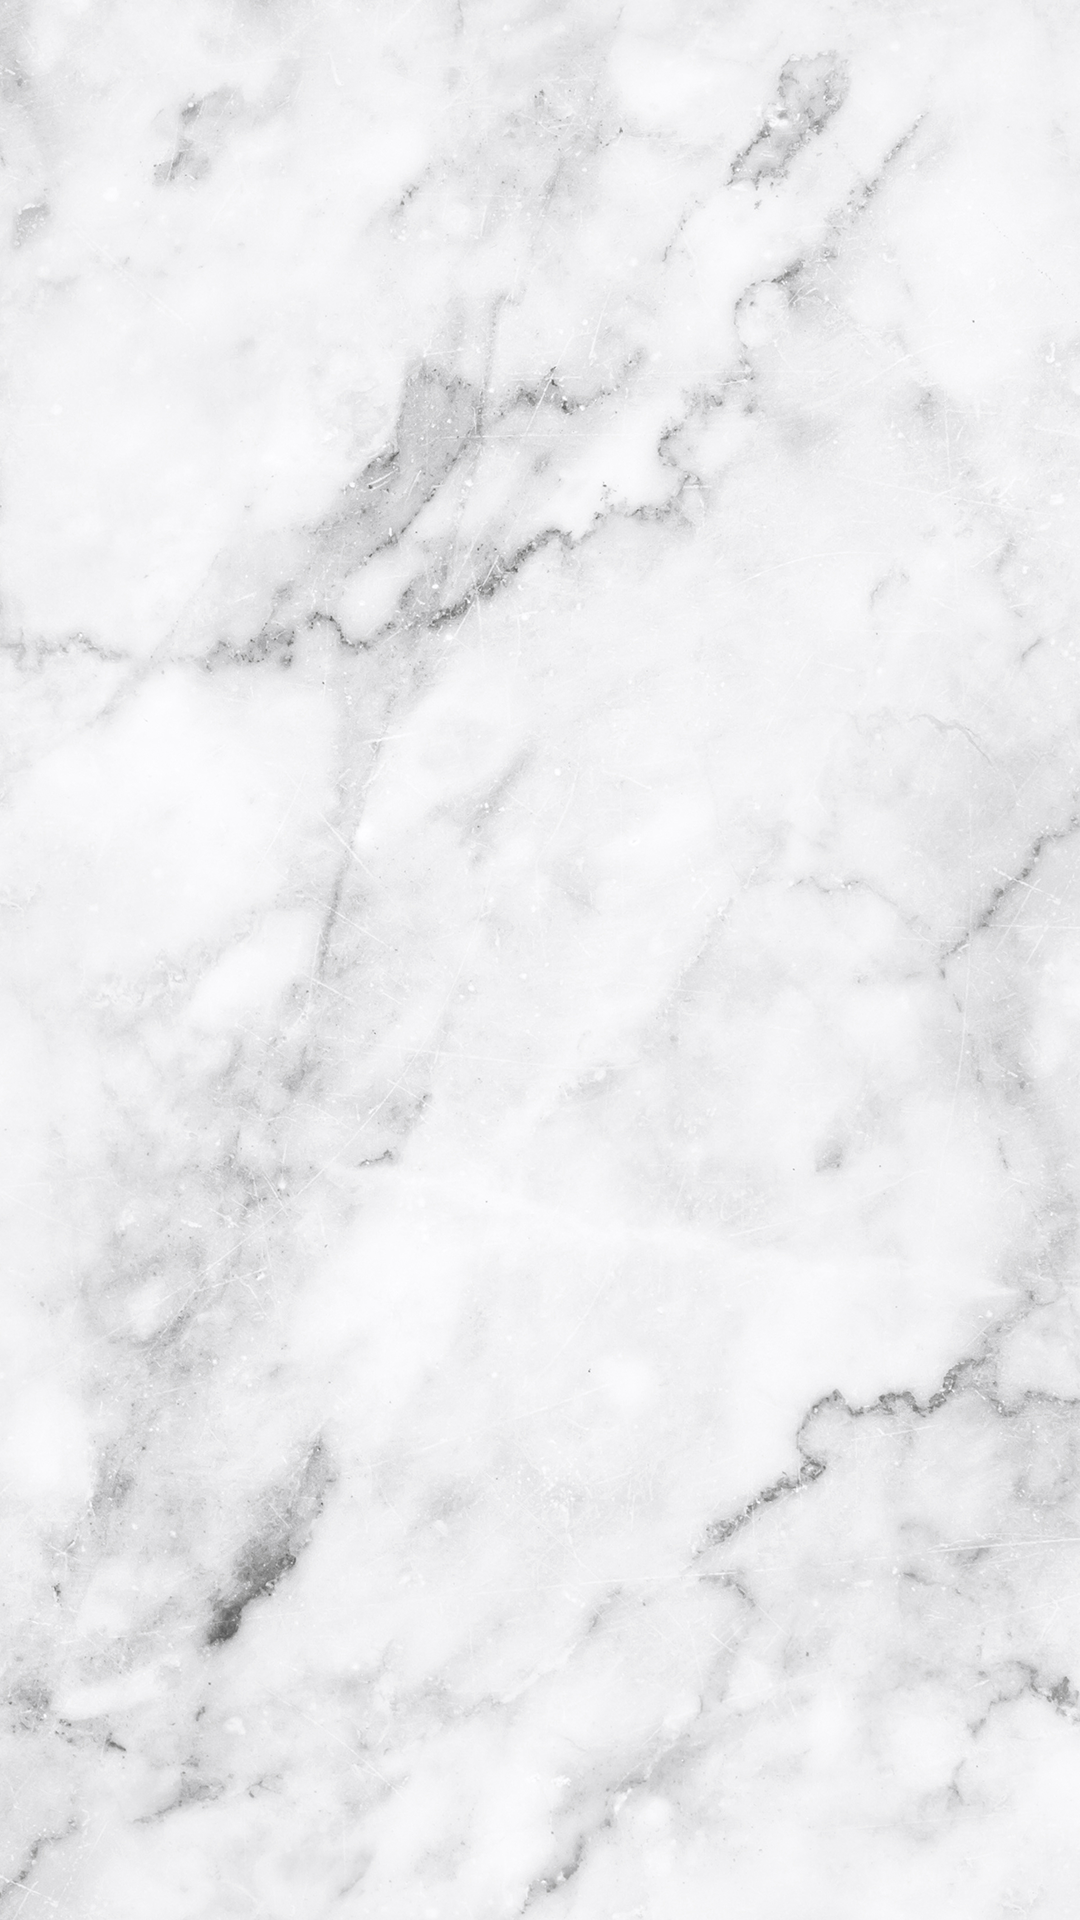 Marble White And Gold Background Picture Firefox Wallpaper Free Download Wallpapers Desktop In 2020 Phone Backgrounds Background Pictures Marble Wallpaper